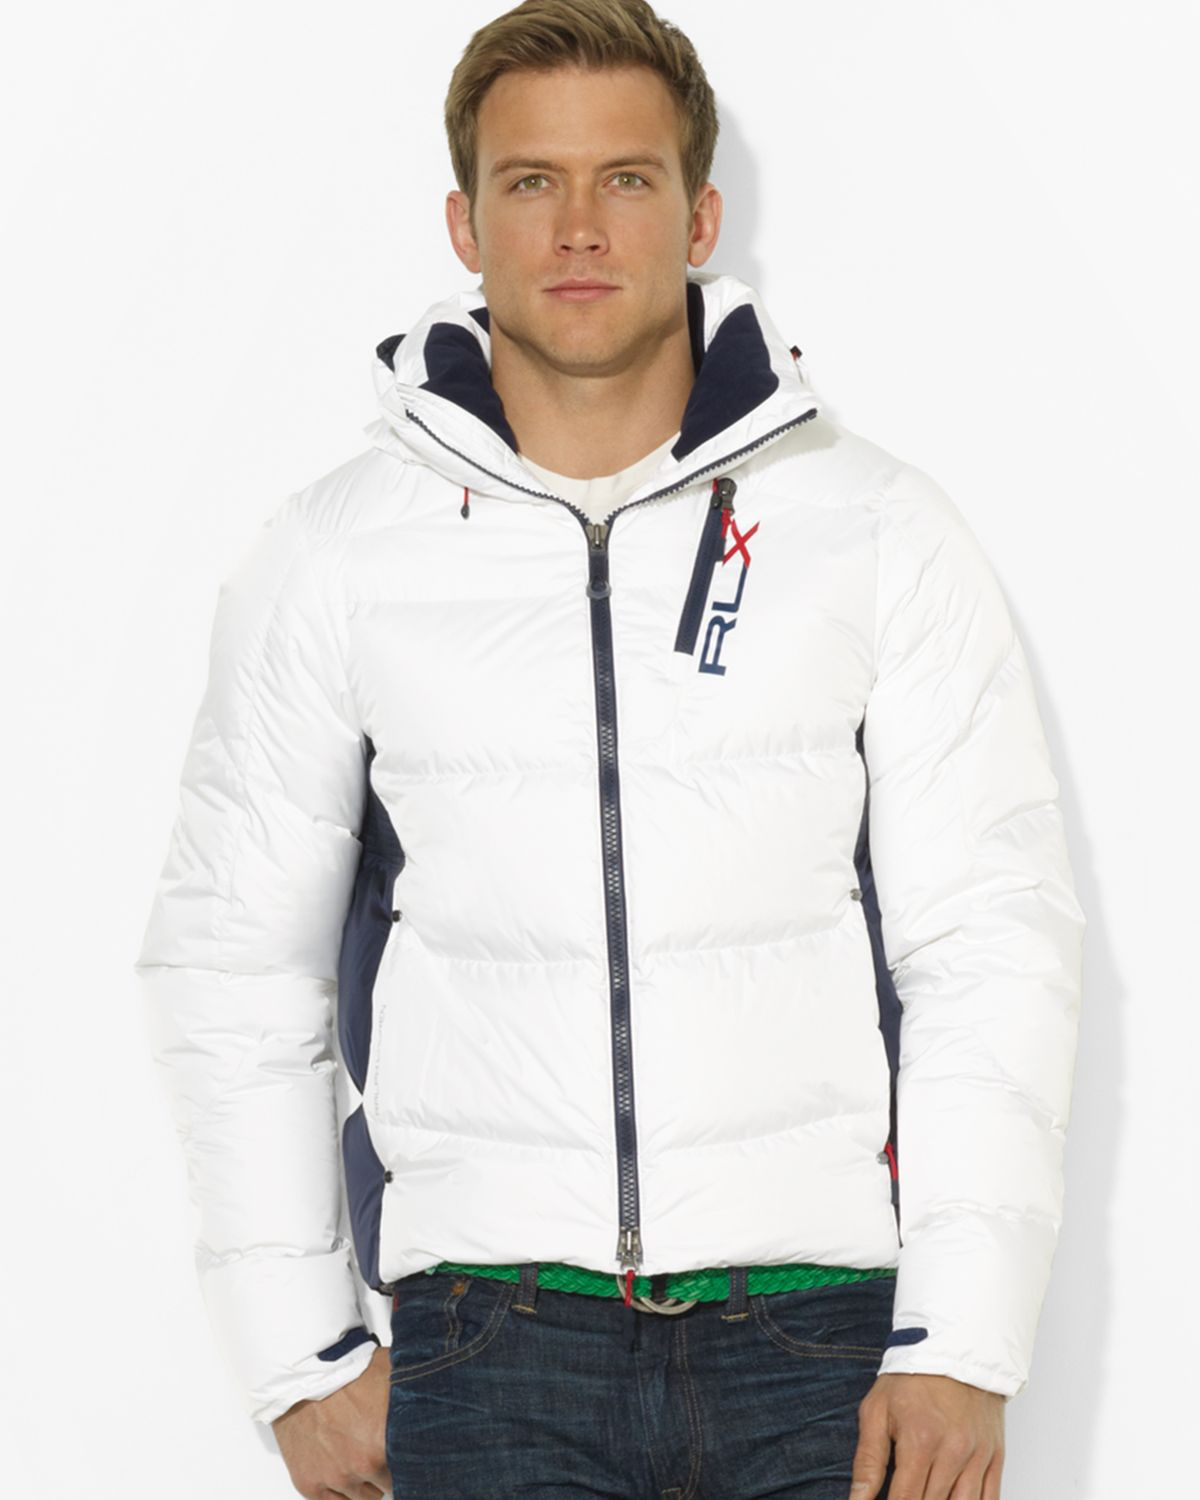 Ralph Lauren Polo Rlx Core Down Jacket in White for Men - Lyst